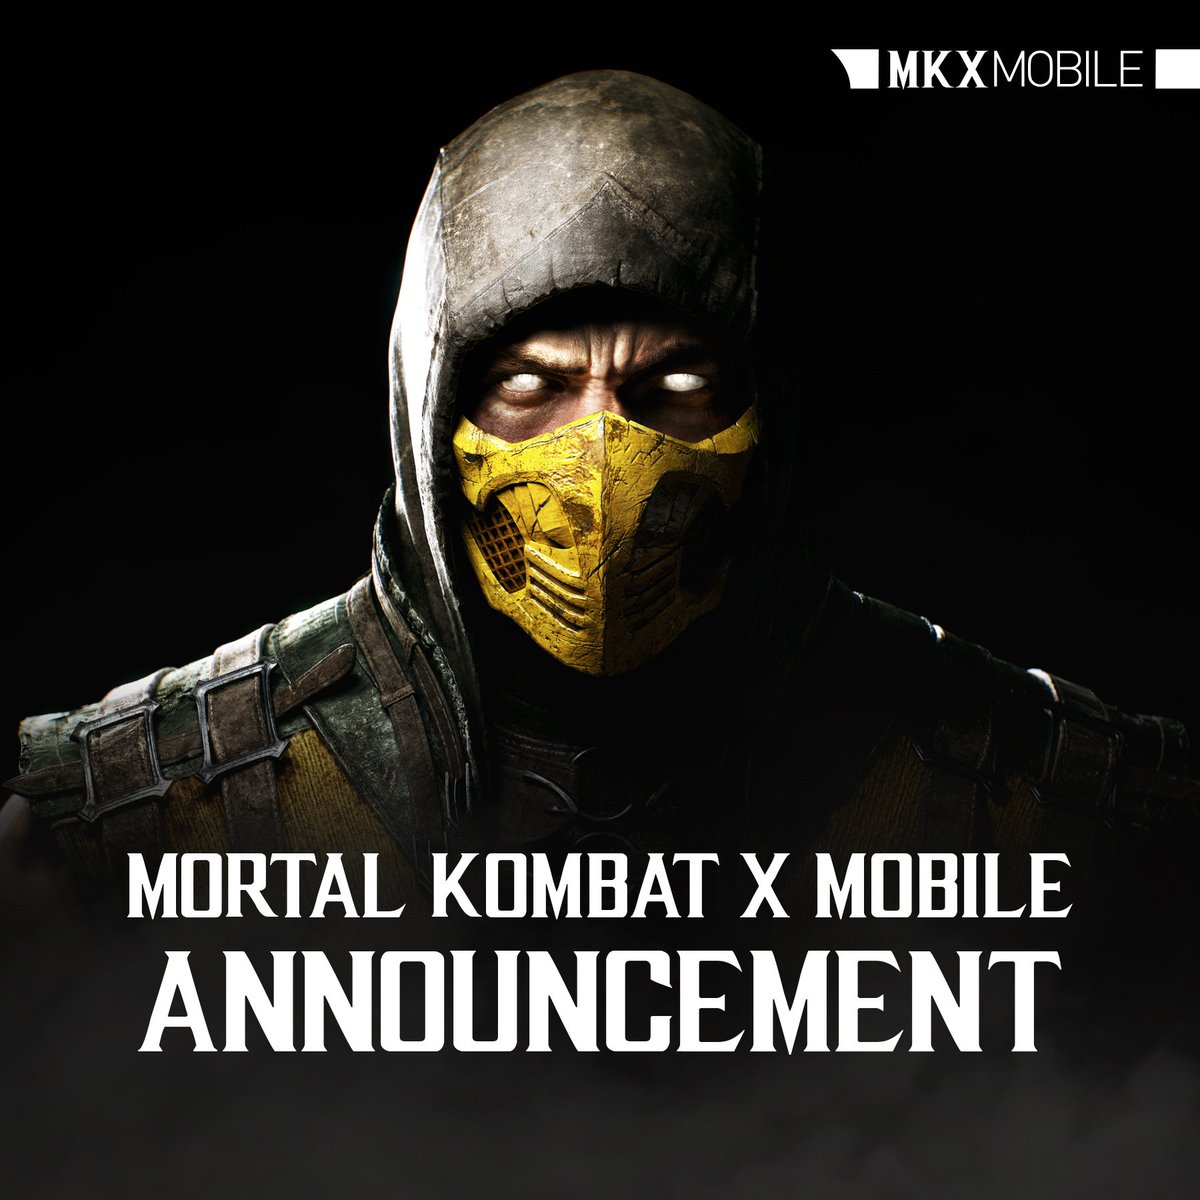 mkxmobile hashtag on Twitter